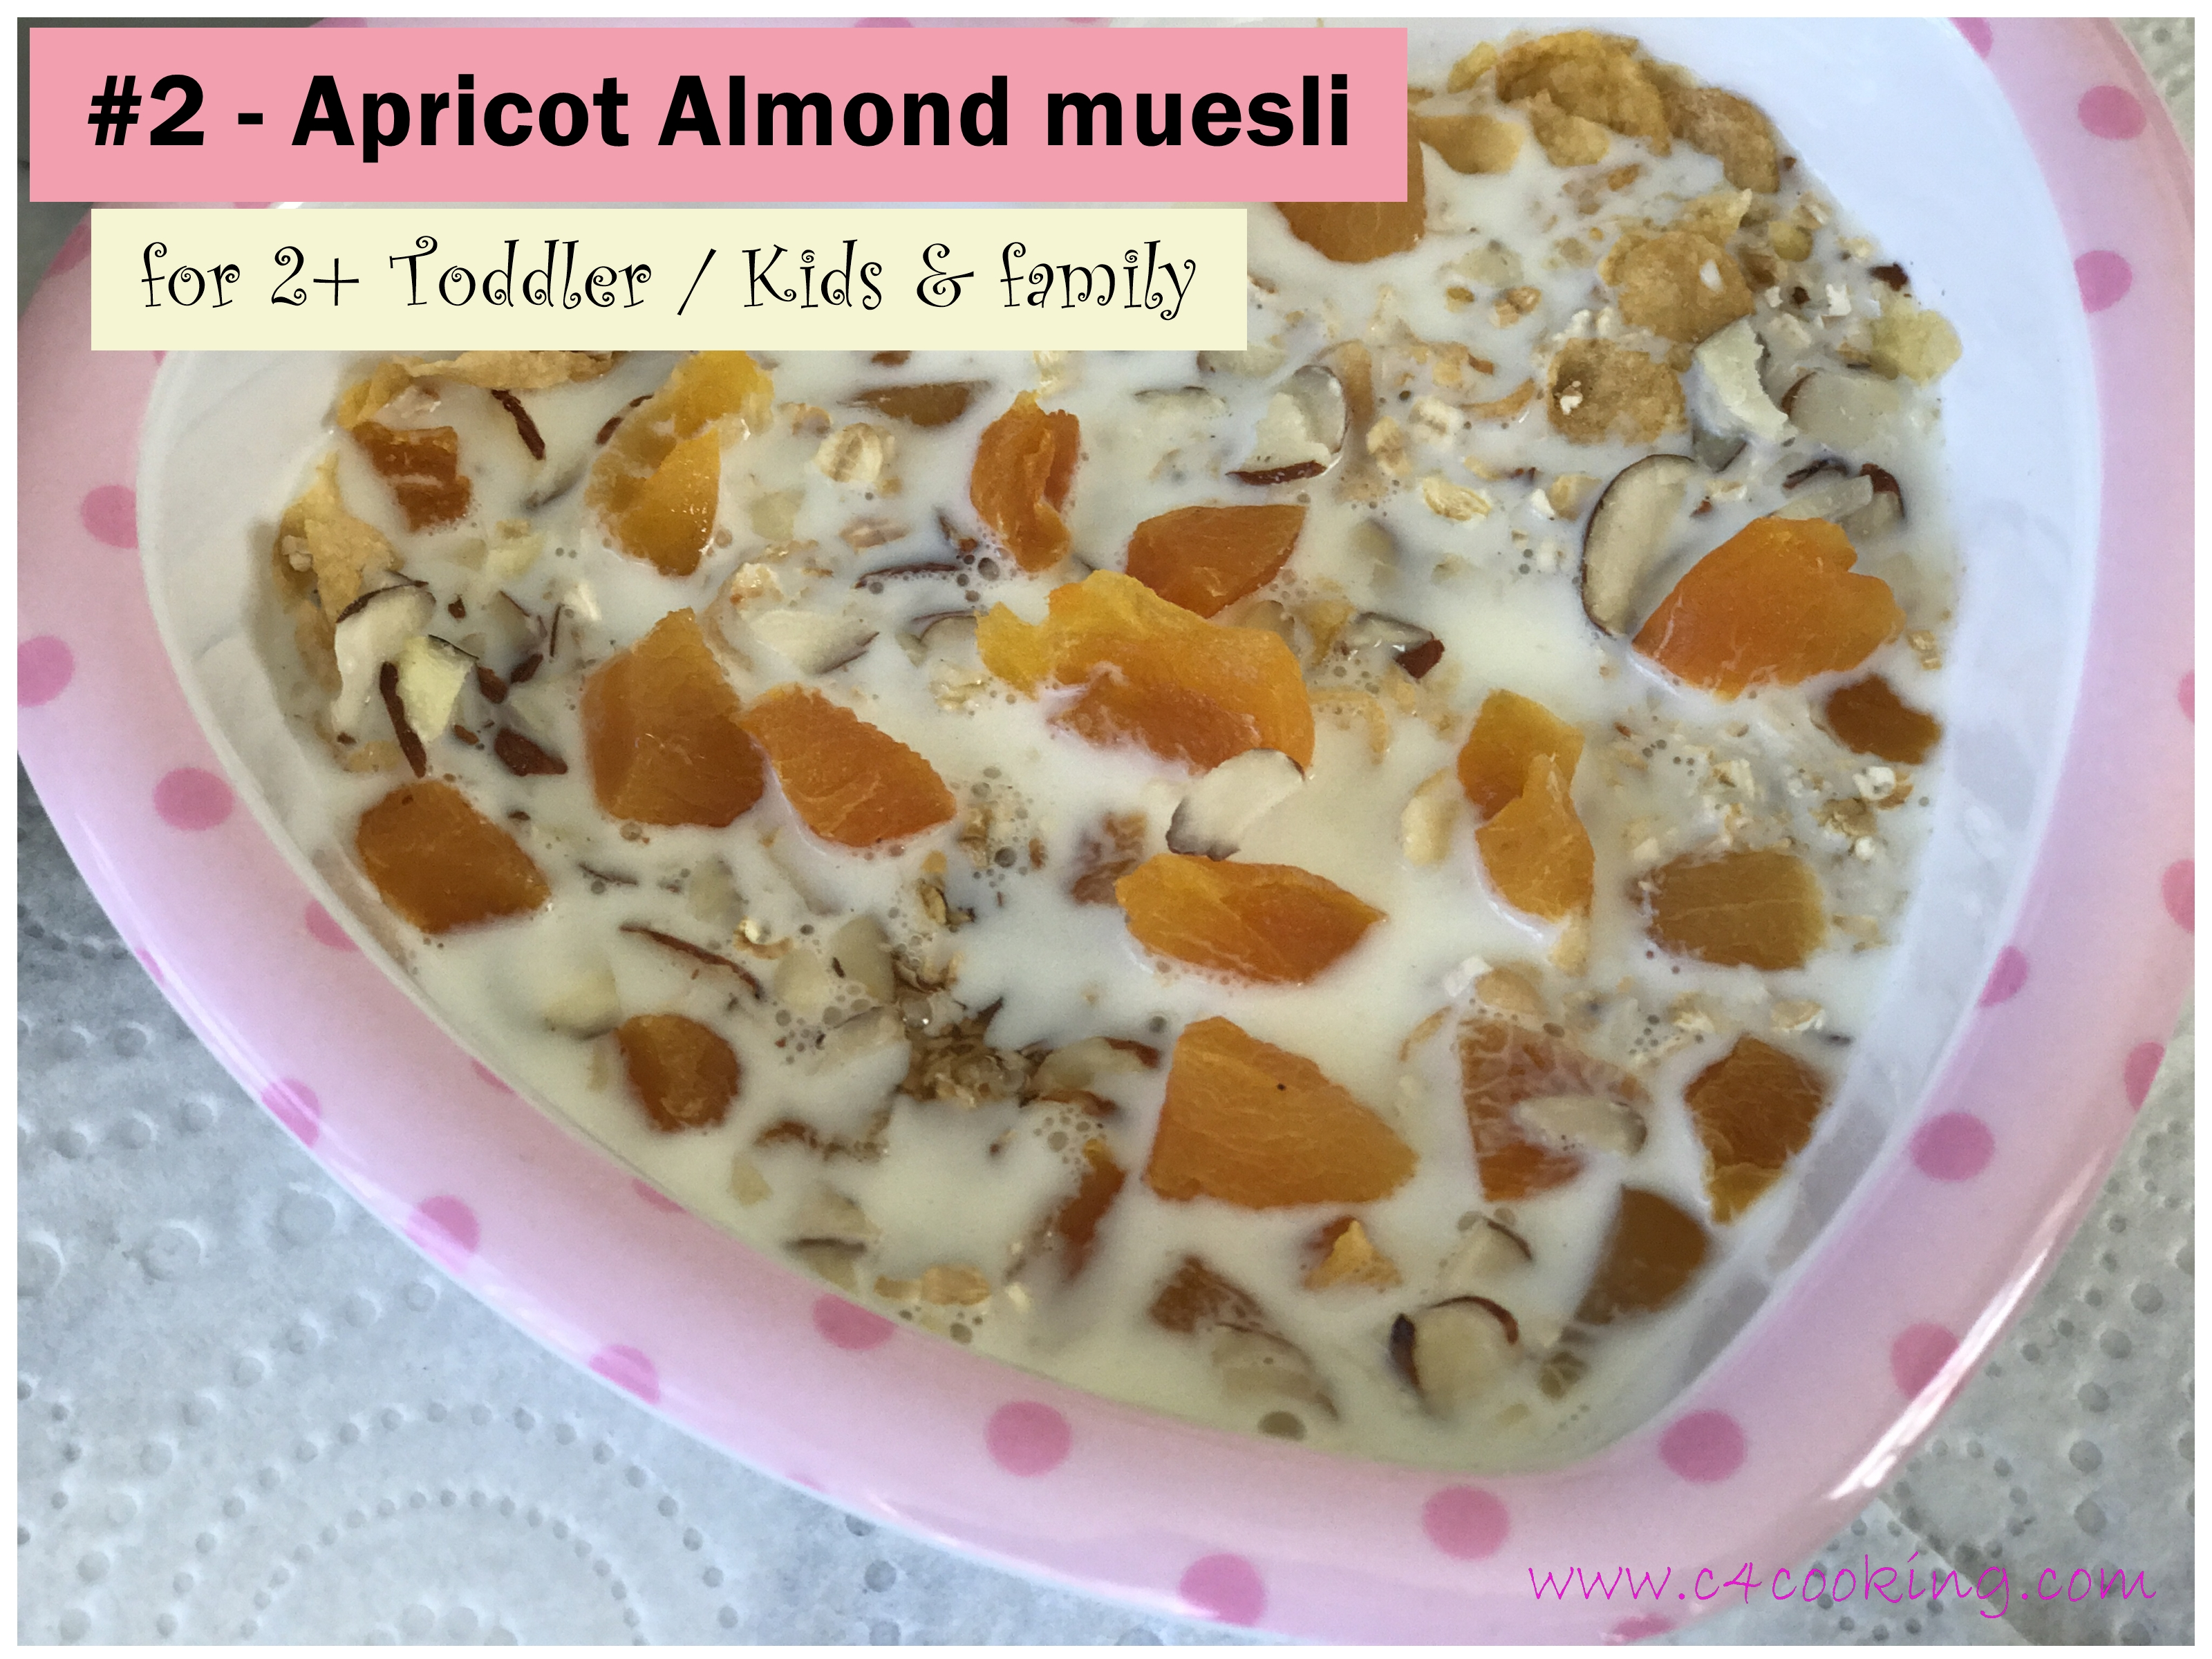 Apricot Almond muesli recipe, kids muesli recipe